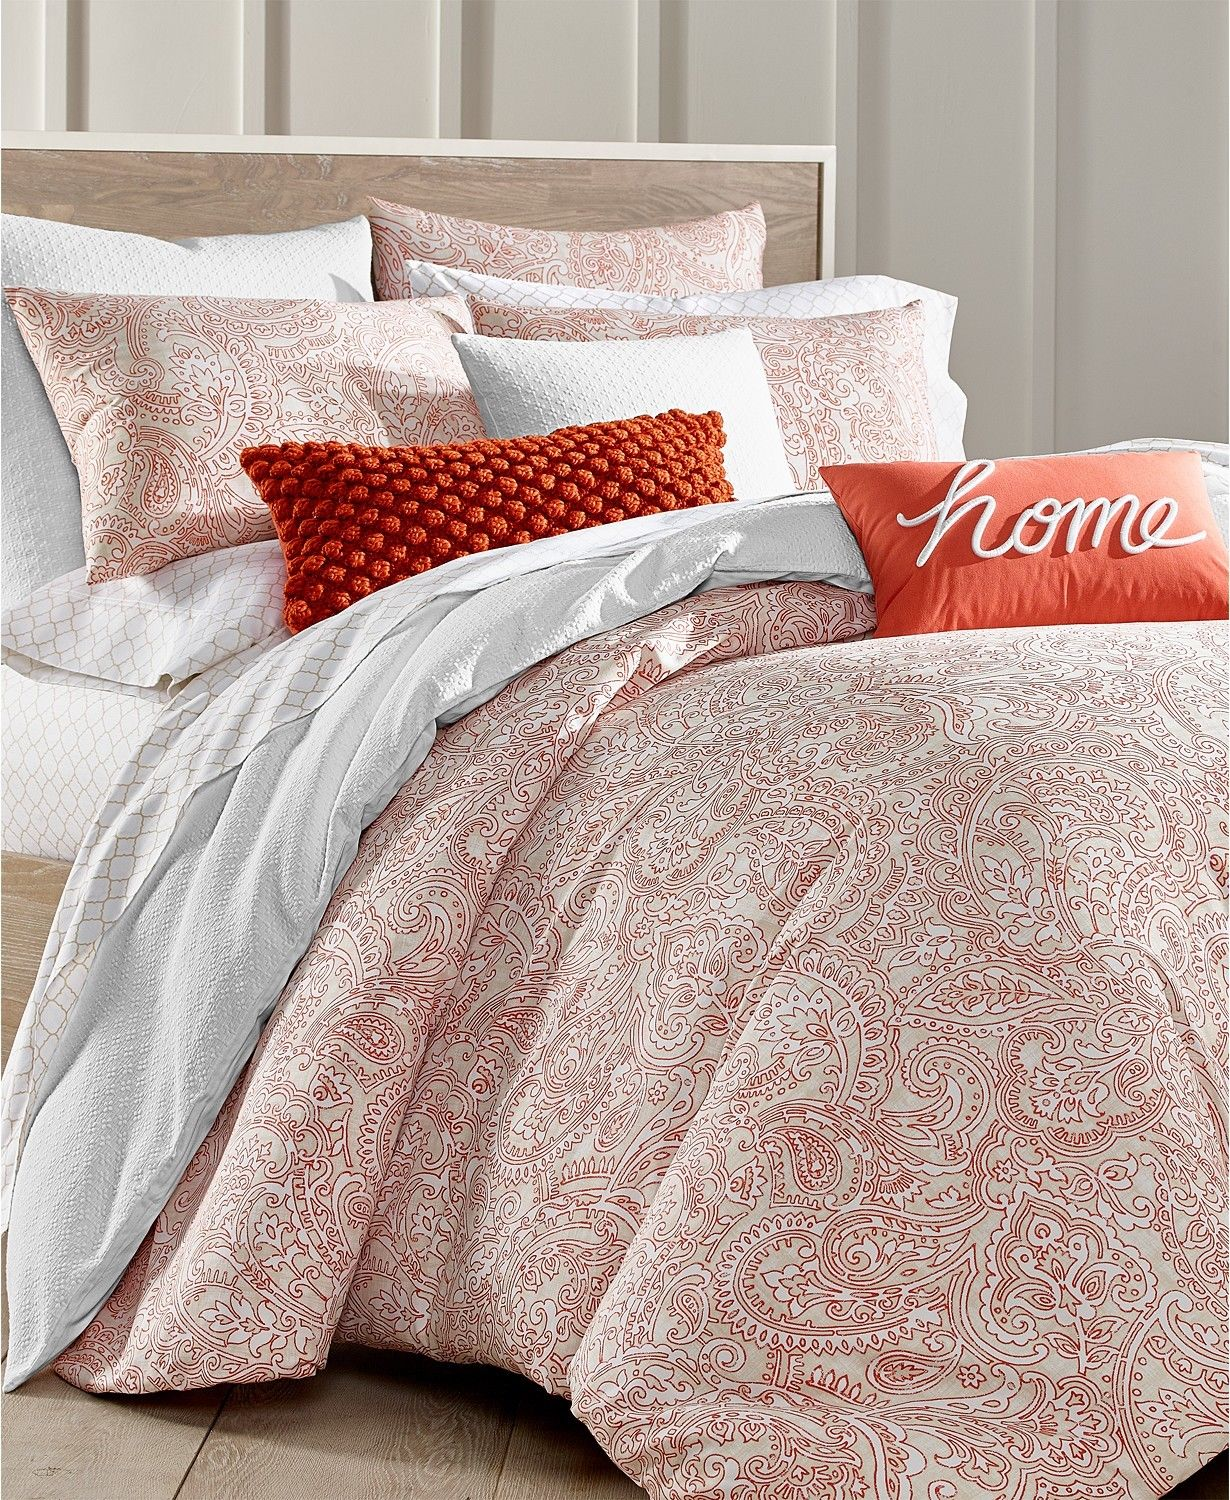 Charter Club Damask Designs Paisley Cotton 300 Thread Count 3 Pc Full Queen Duvet Cover Set Kalsona